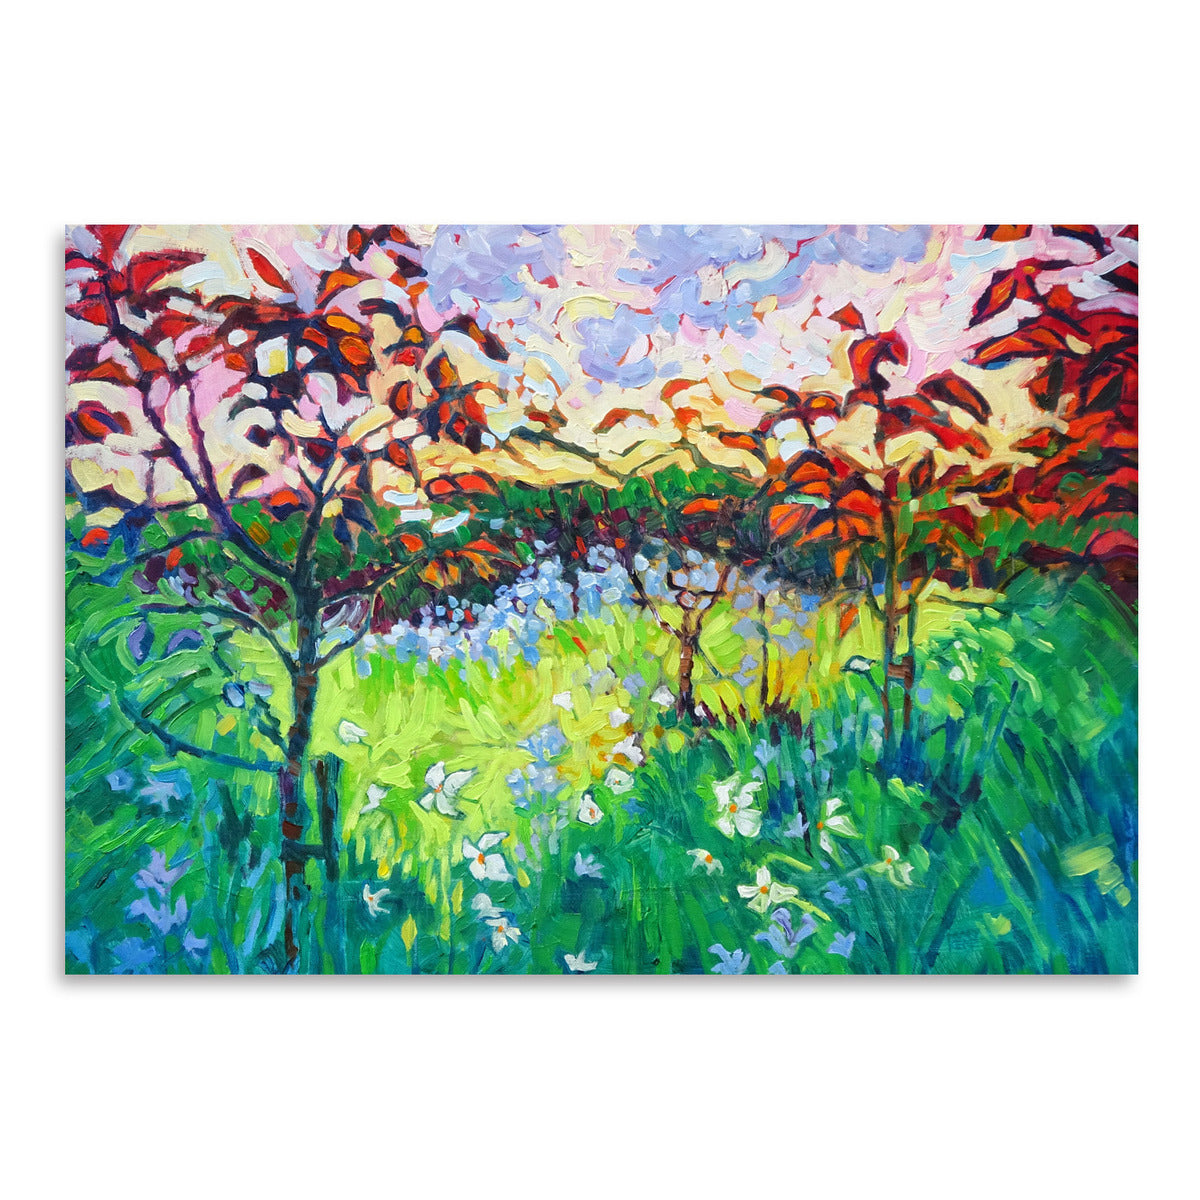 Garden At Houghton Hall by Mary Kemp - Art Print - Americanflat